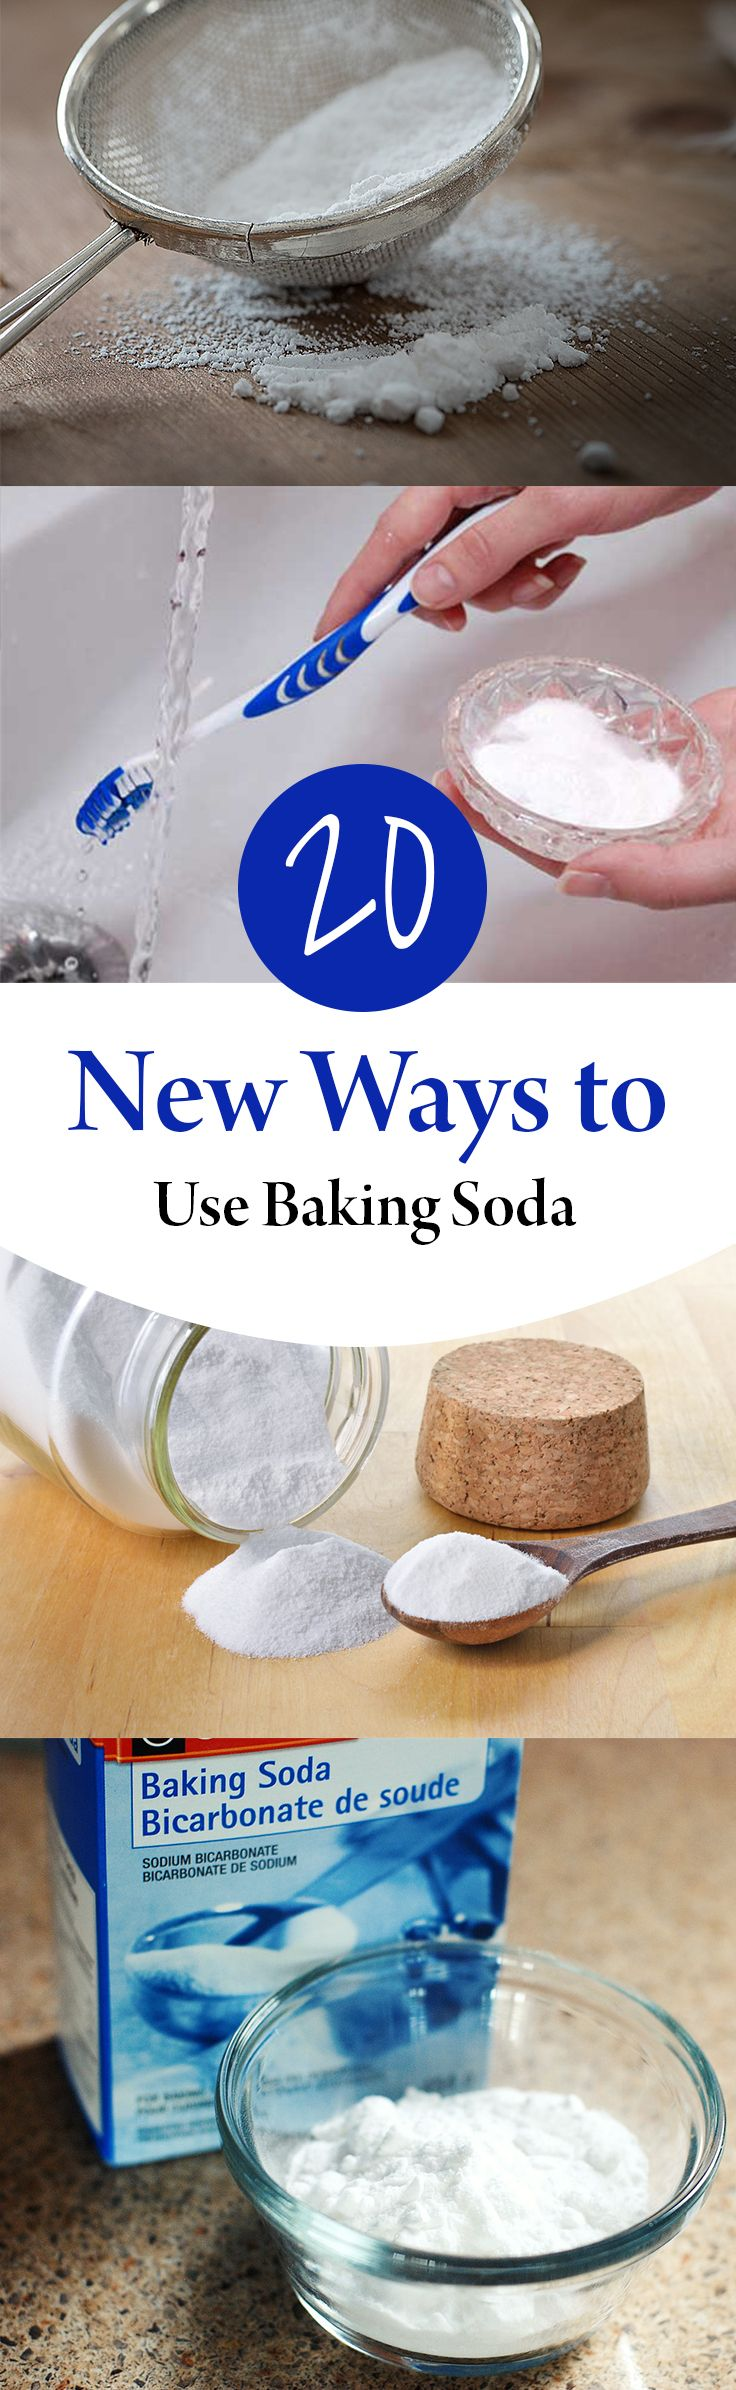 20 New Ways to Use Baking Soda